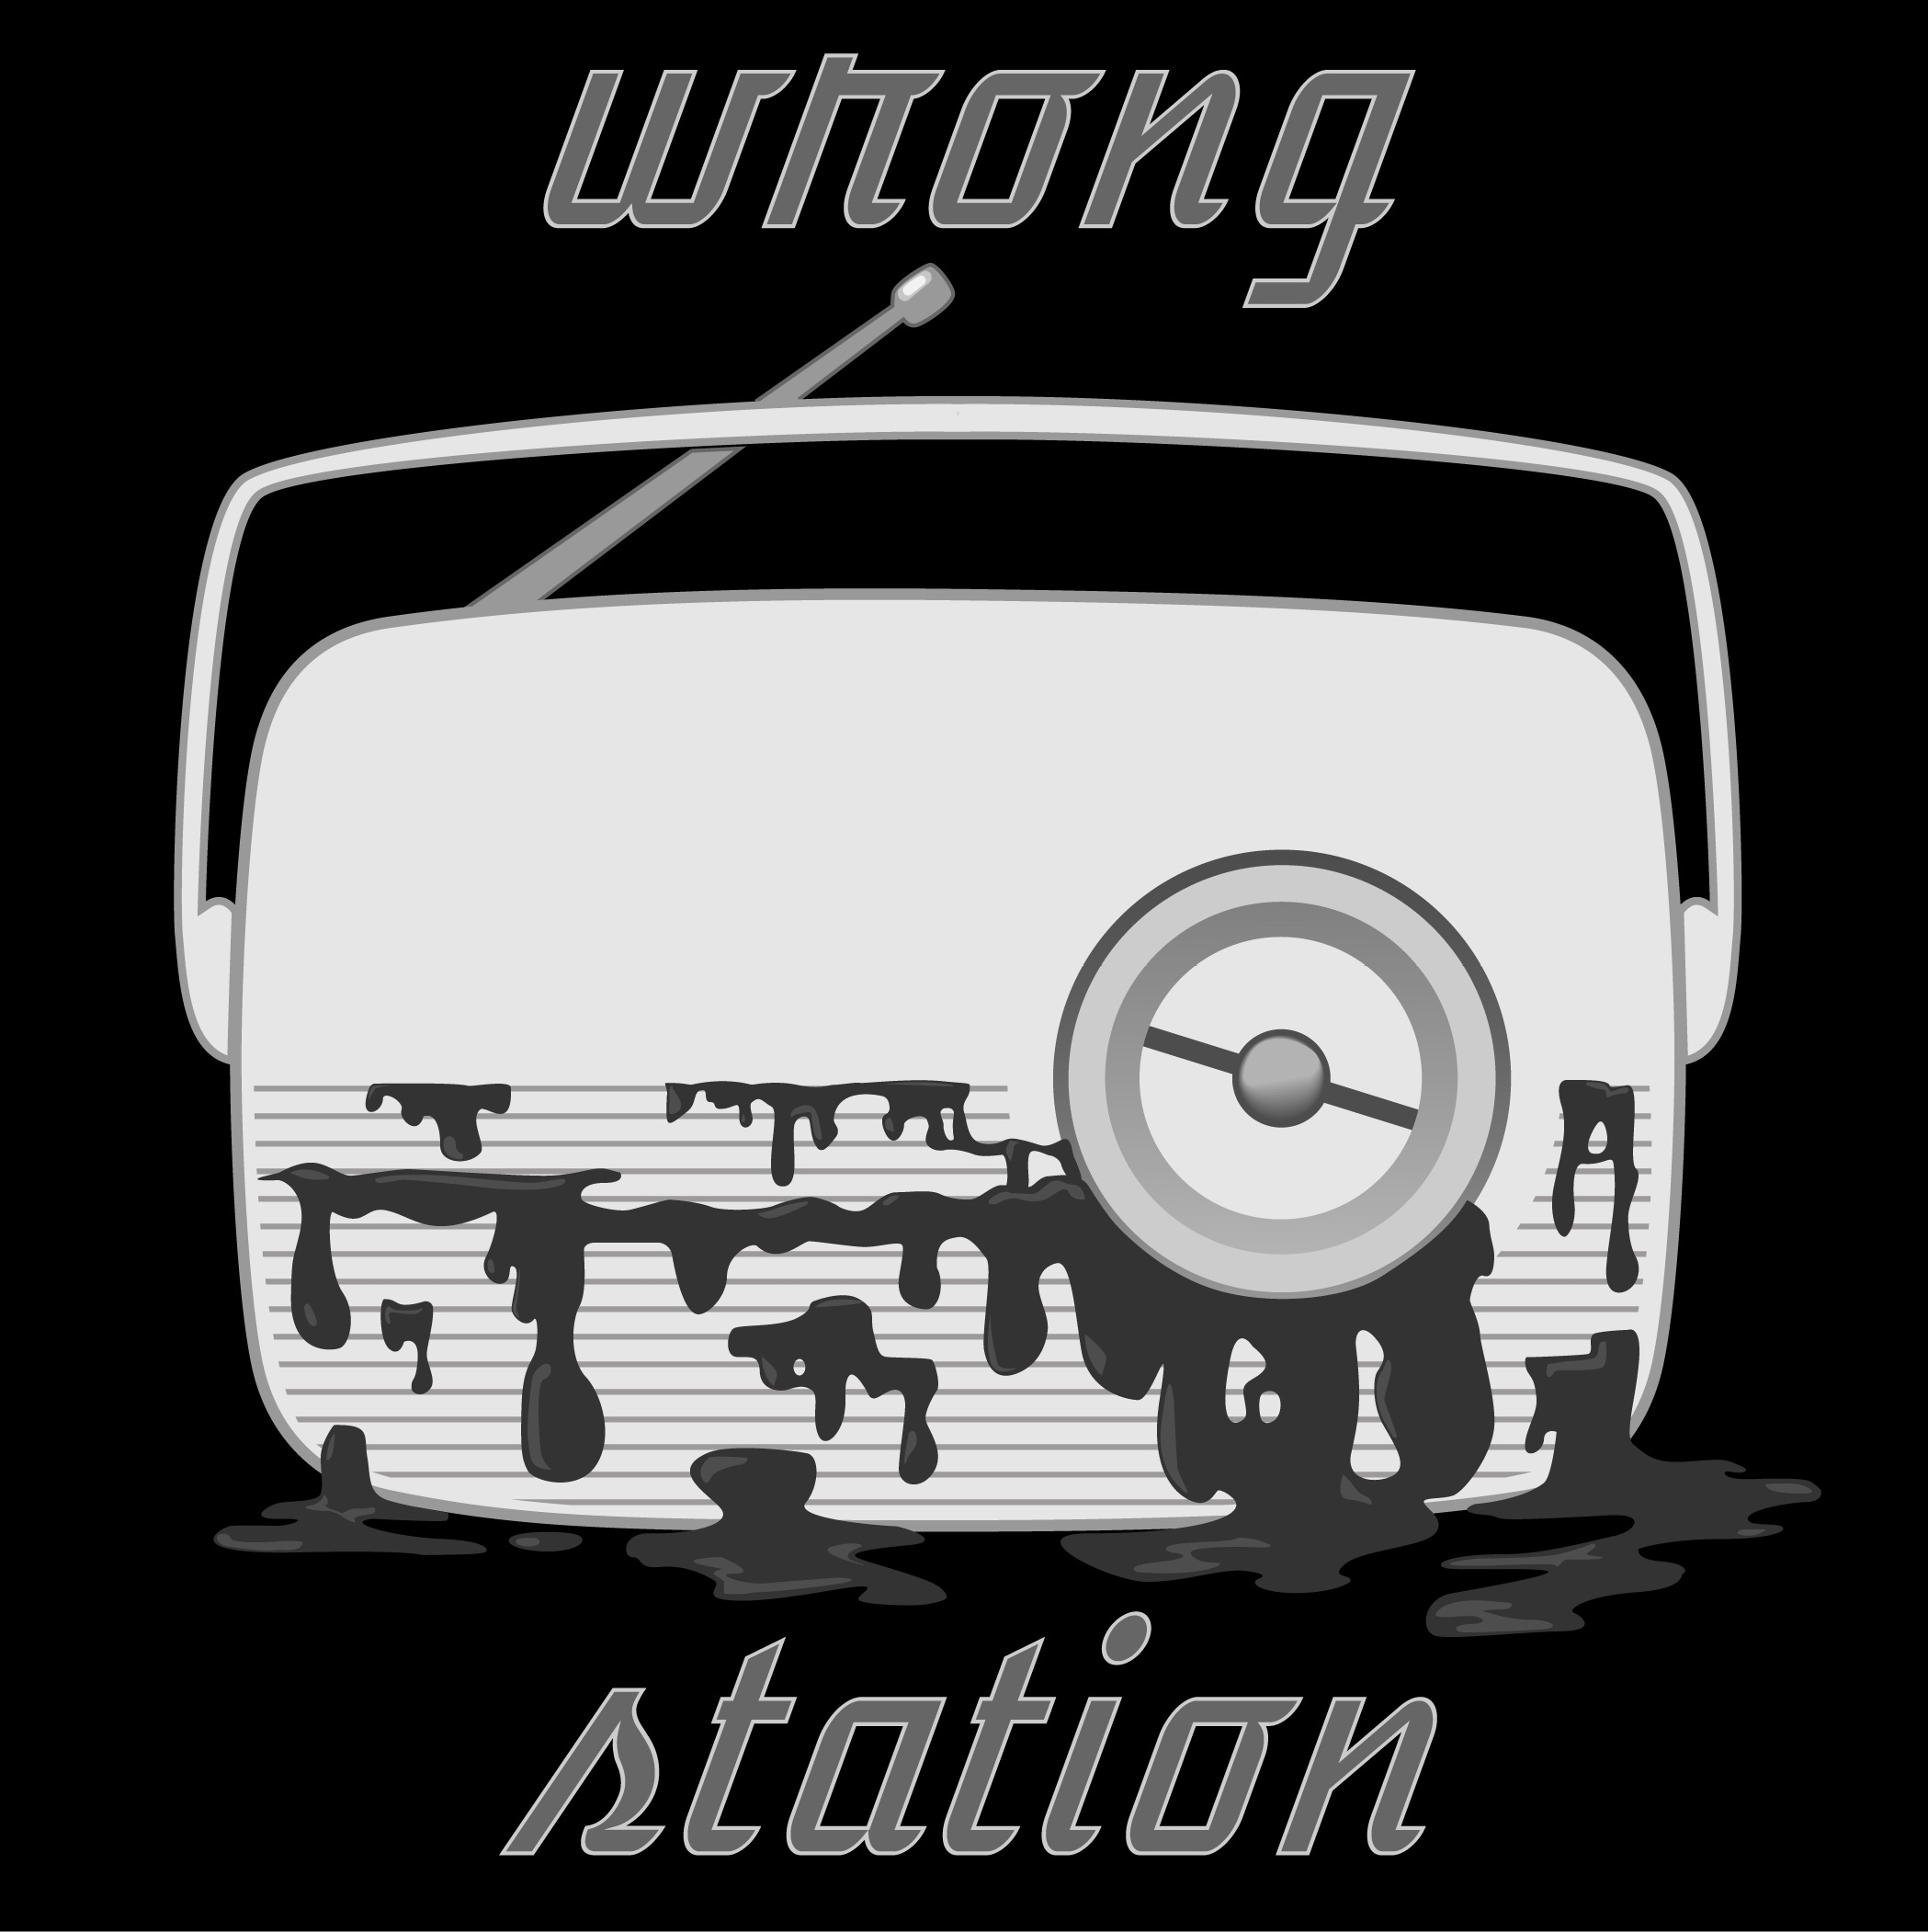 The Wrong Station podcast logo